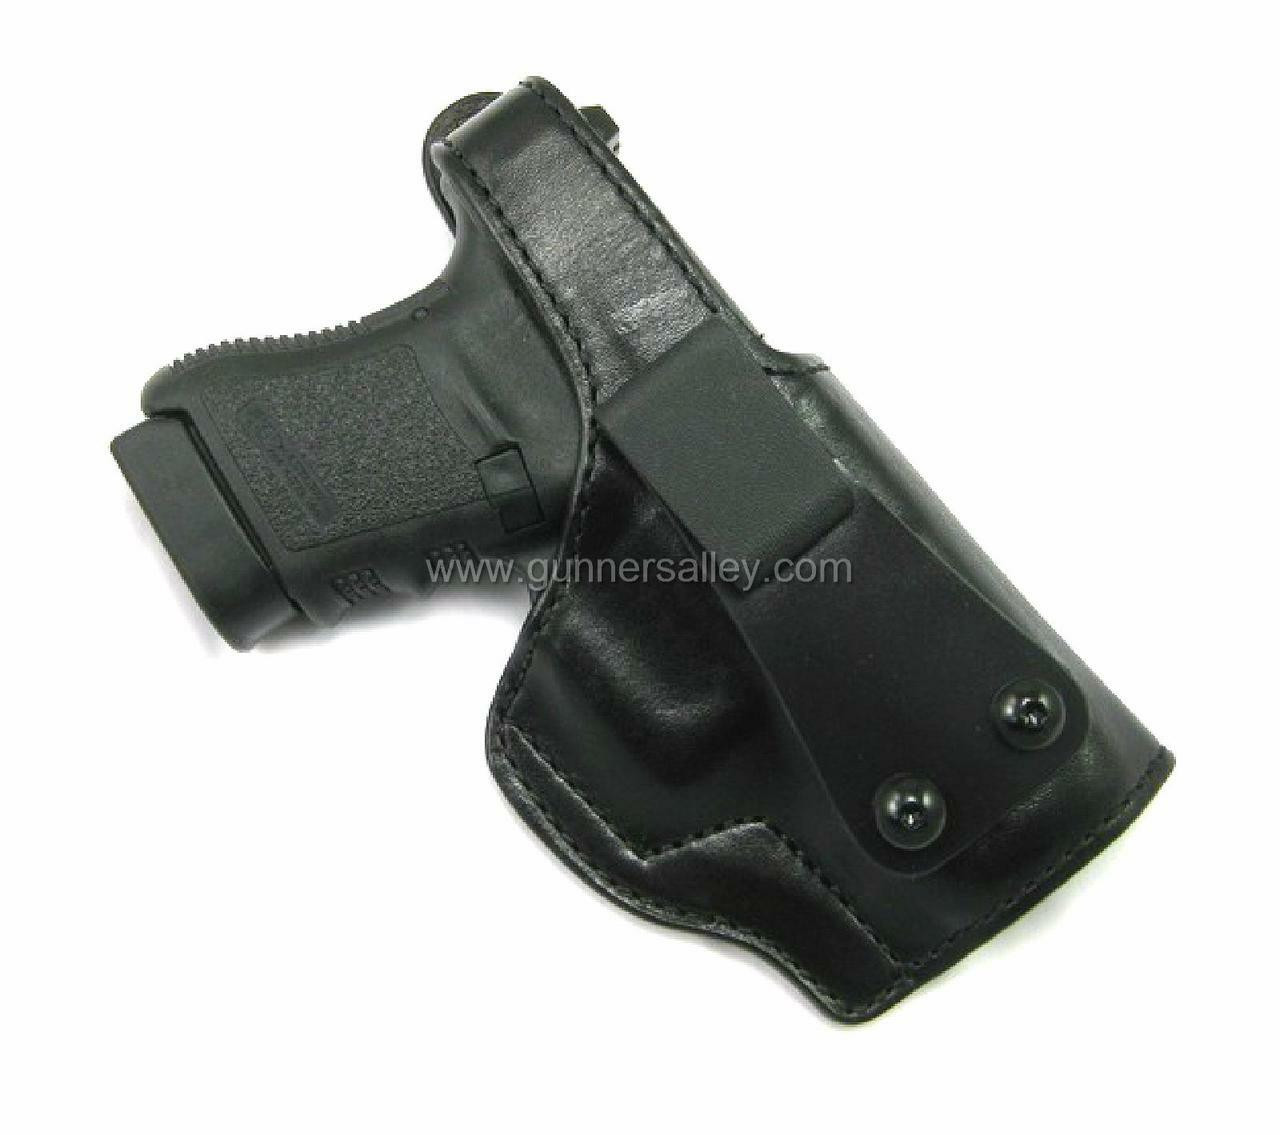 Profile View - Shown with a Glock 30 for Demonstration Purposes